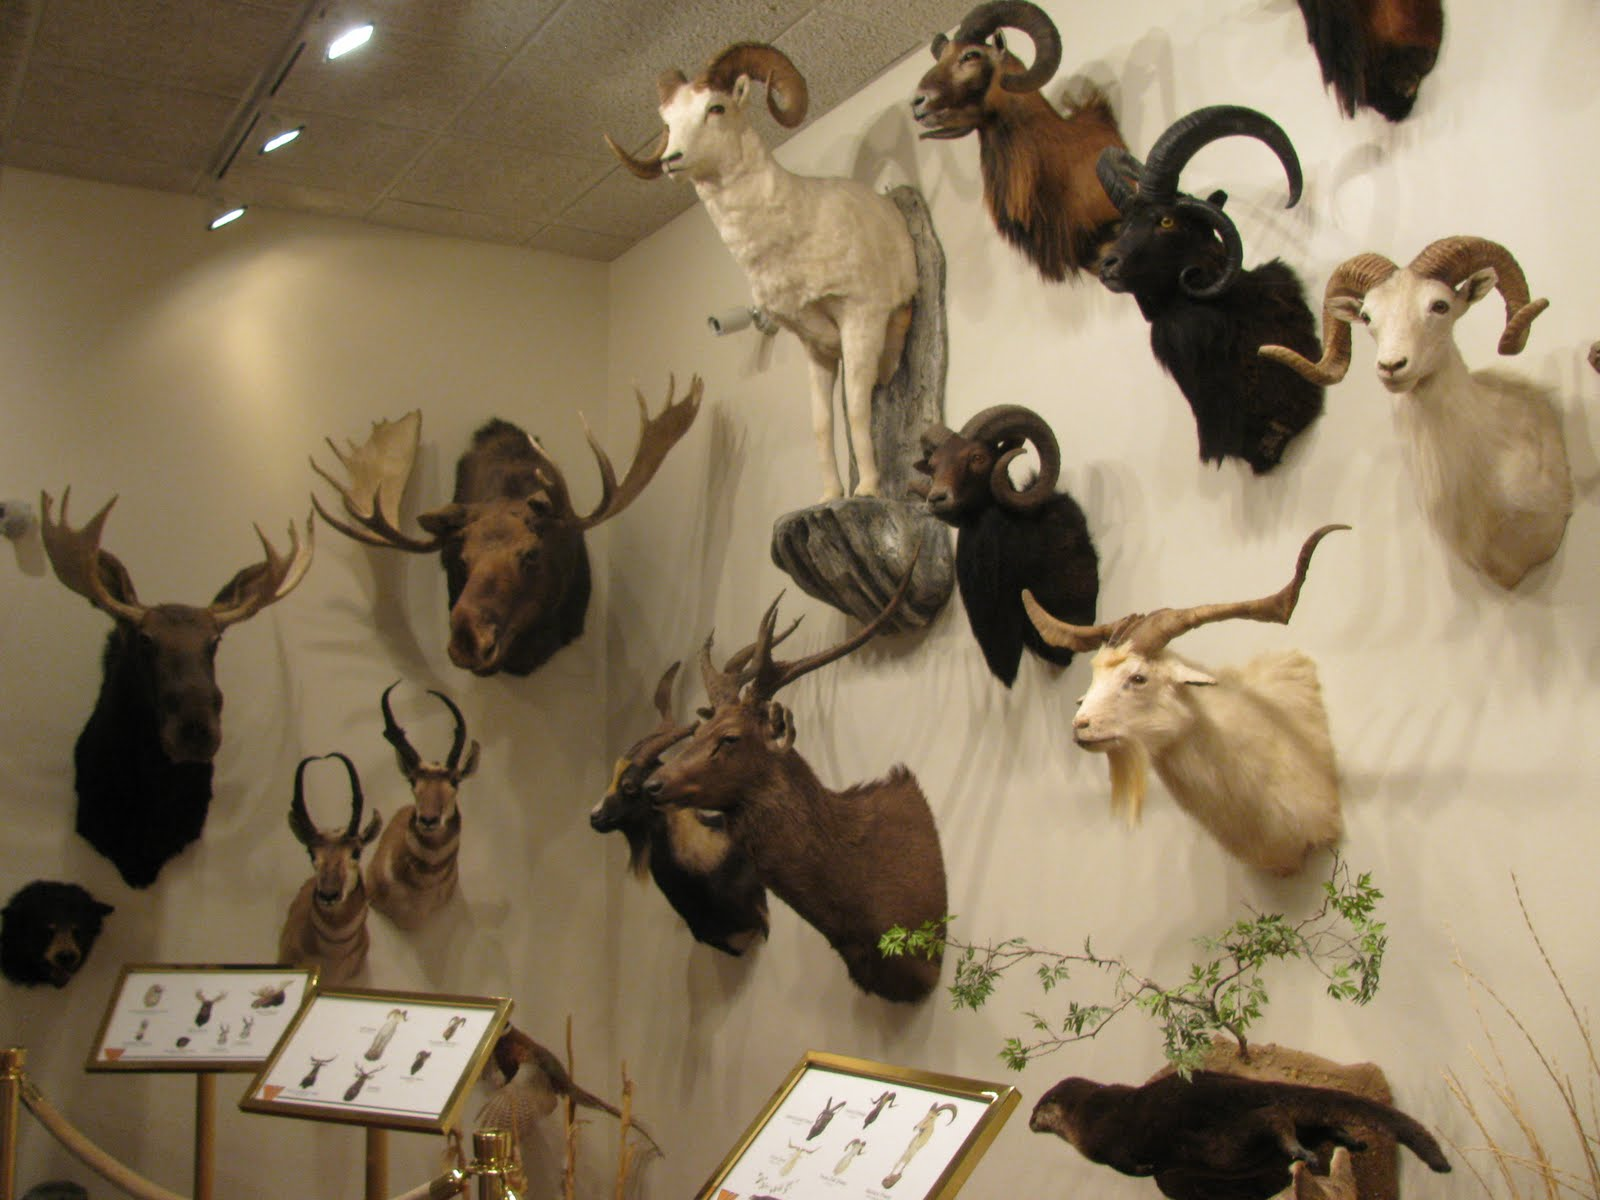 Wwcc Natural History Museum